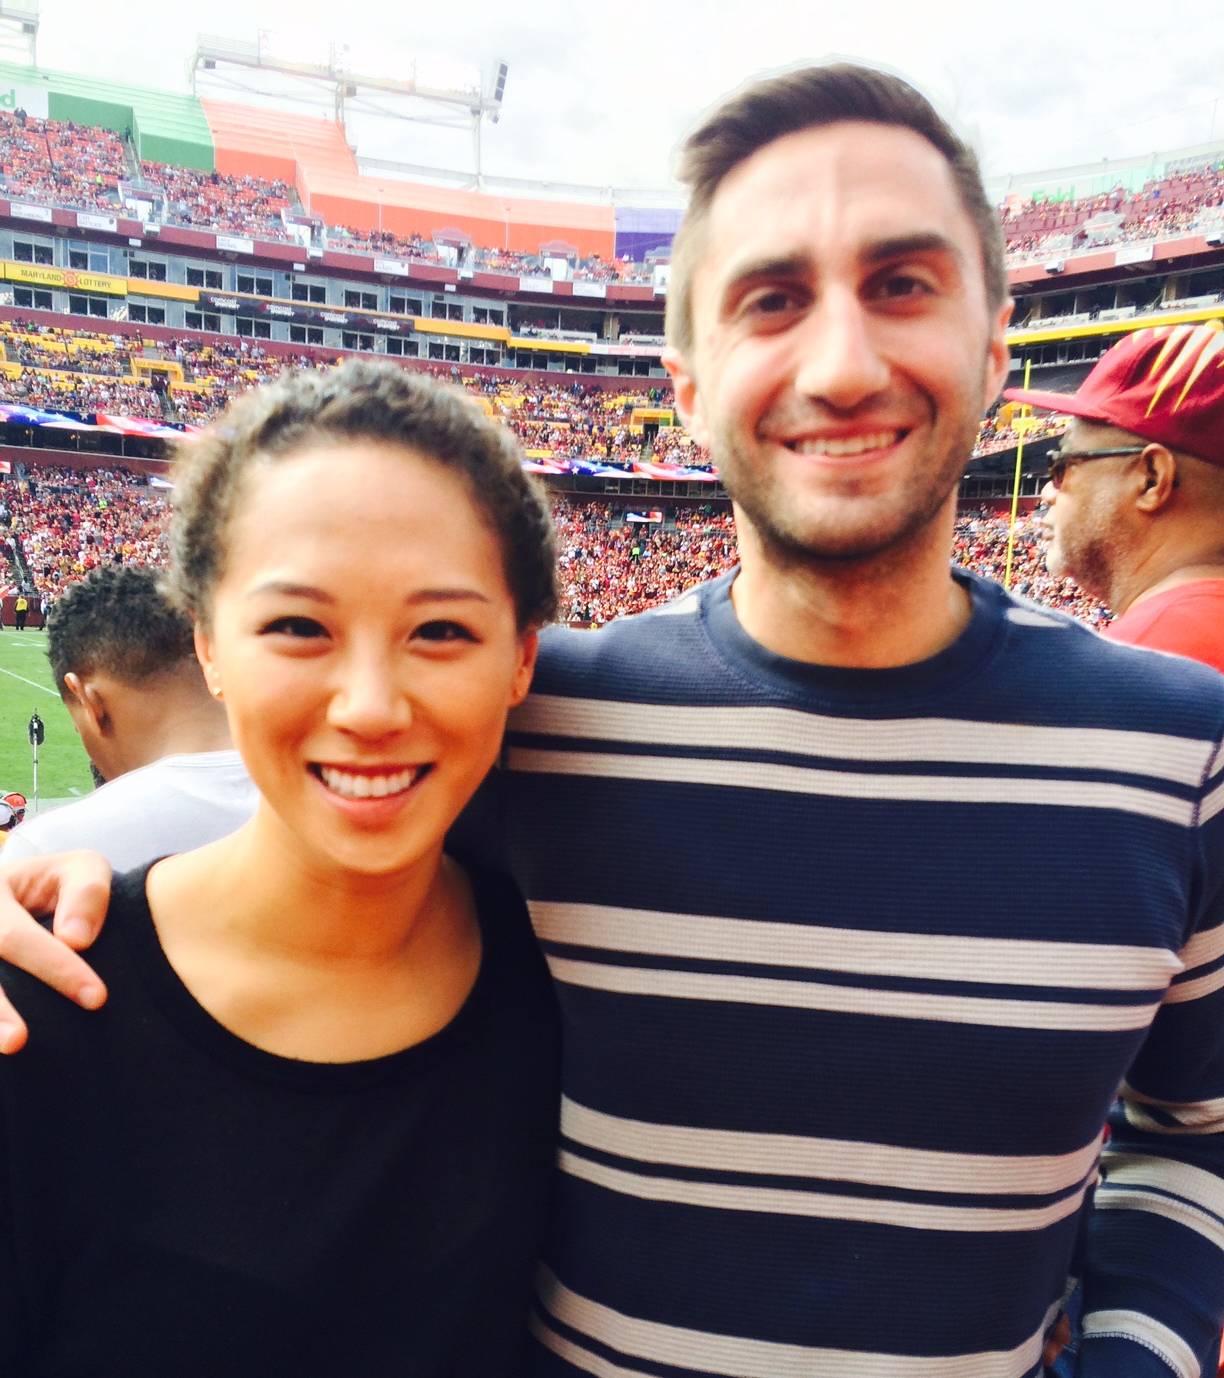 Me and the hubby at a Washington Redskins game.